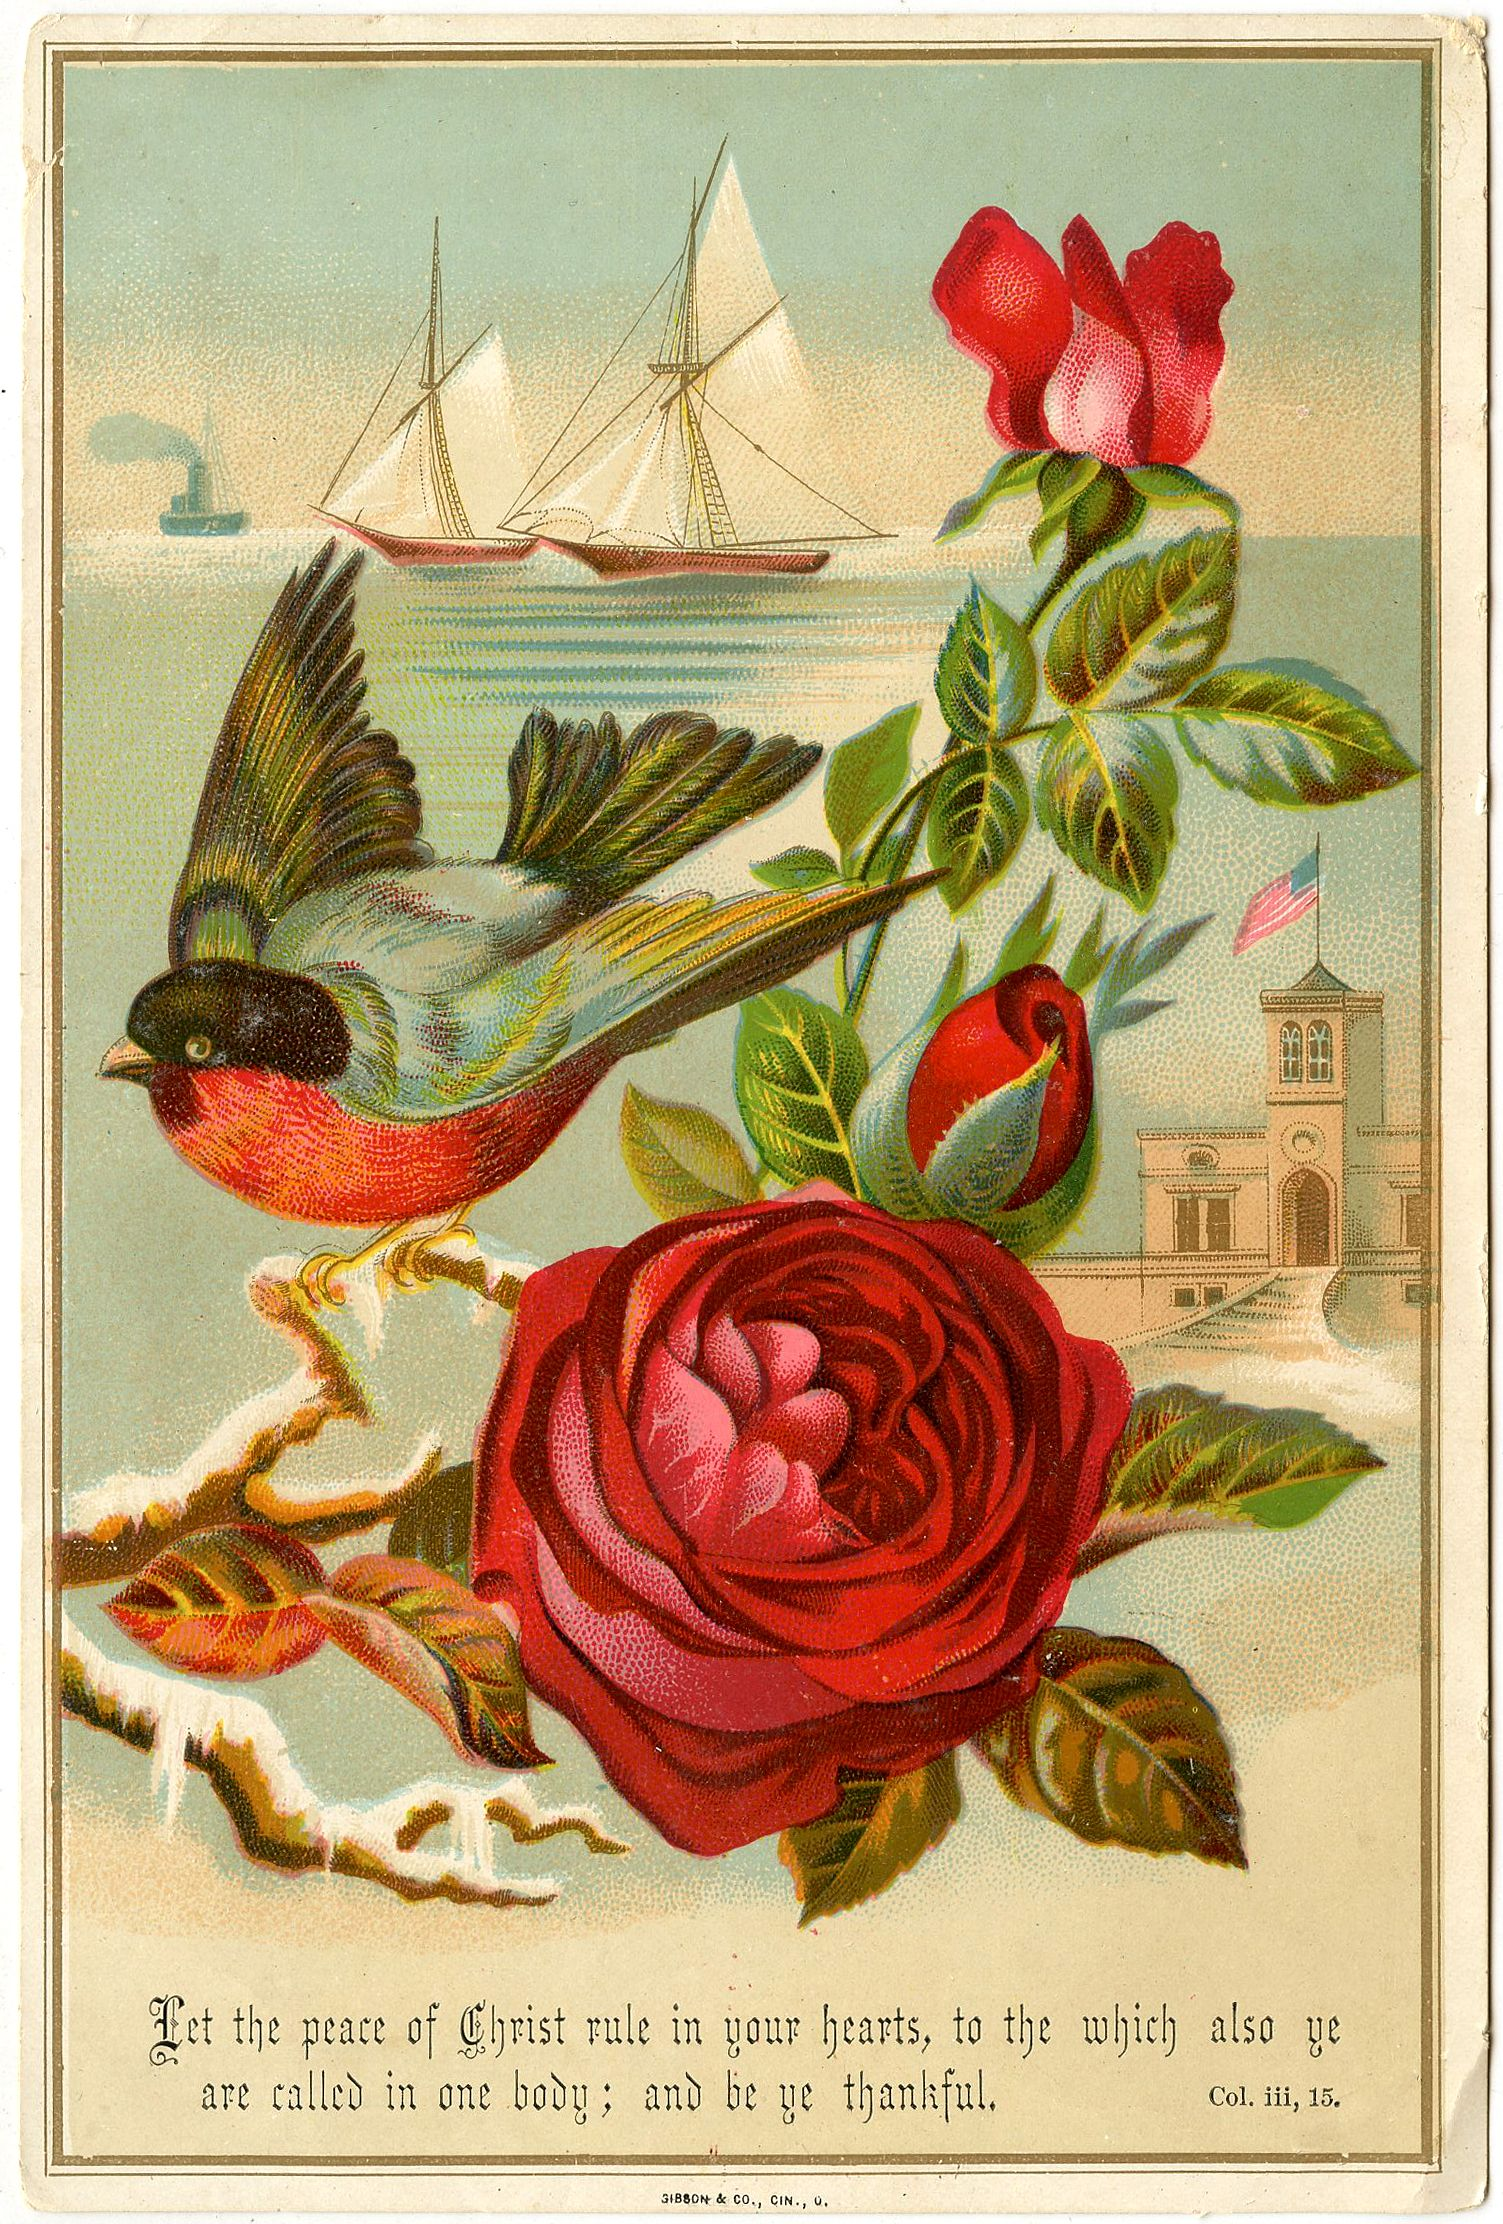 Victorian Valentine Birds Reproduction Quilt Block FrEE ShiPPinG WoRld WiDE